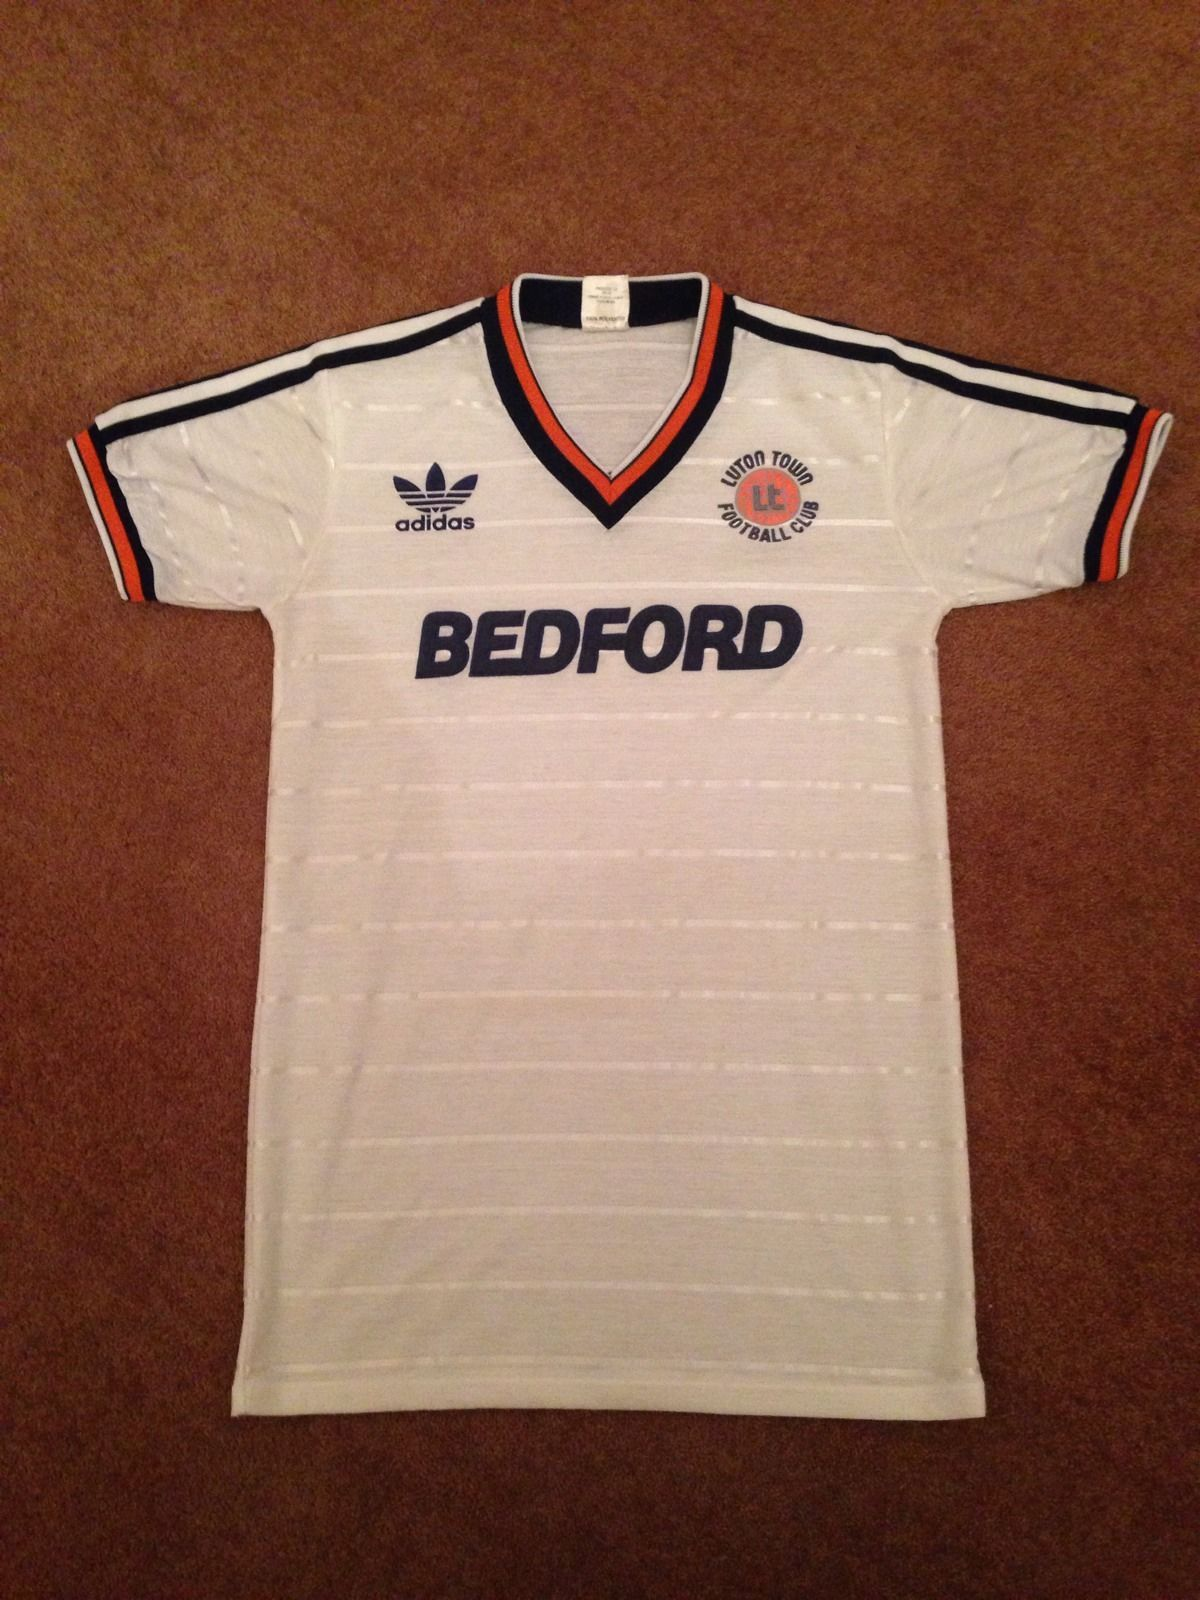 Luton Town Shirt 1985 86 Season (Very Rare)  8440059ed